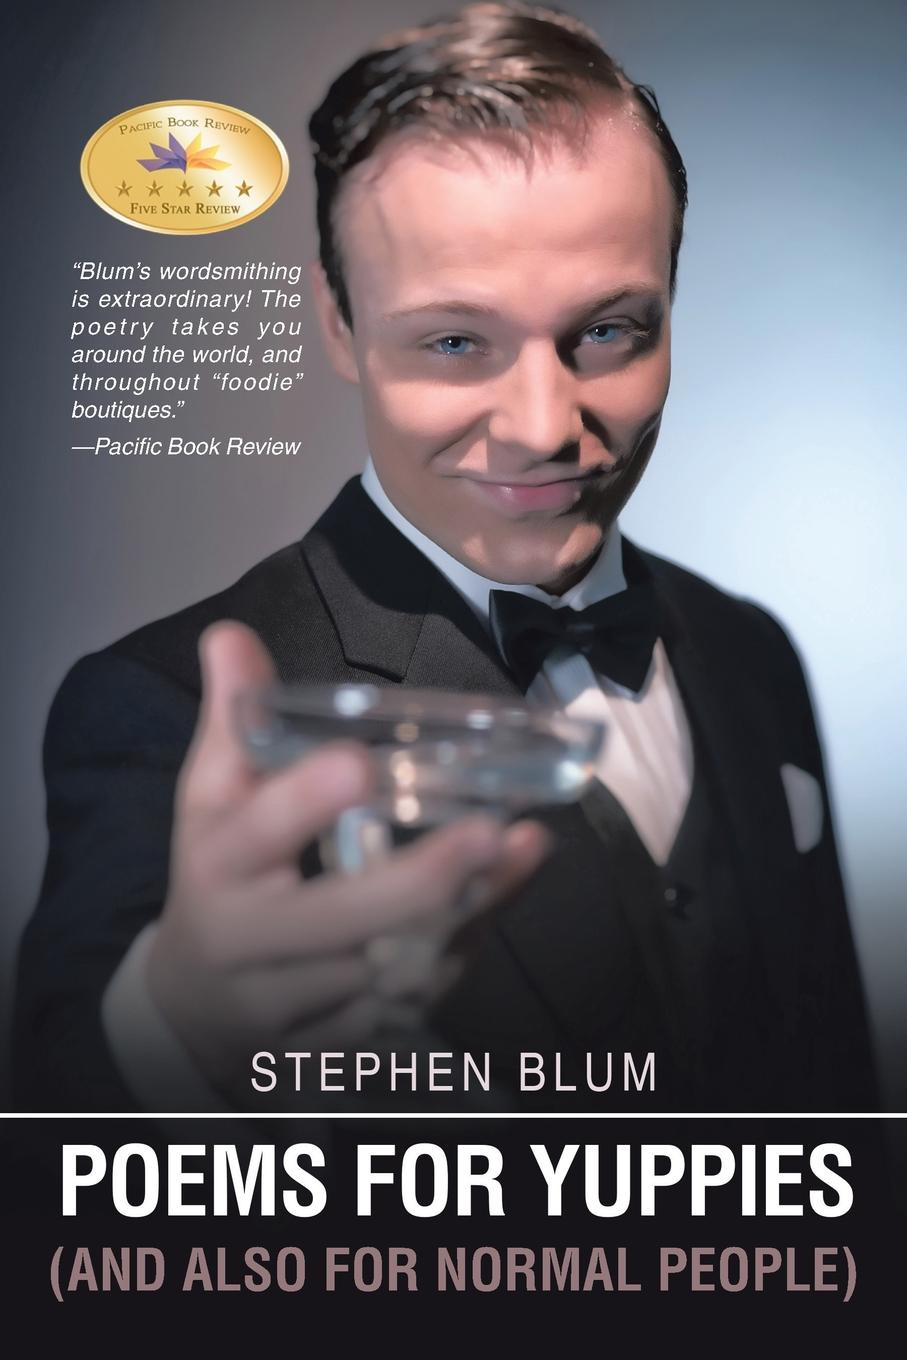 Stephen Blum POEMS FOR YUPPIES (AND ALSO NORMAL PEOPLE)